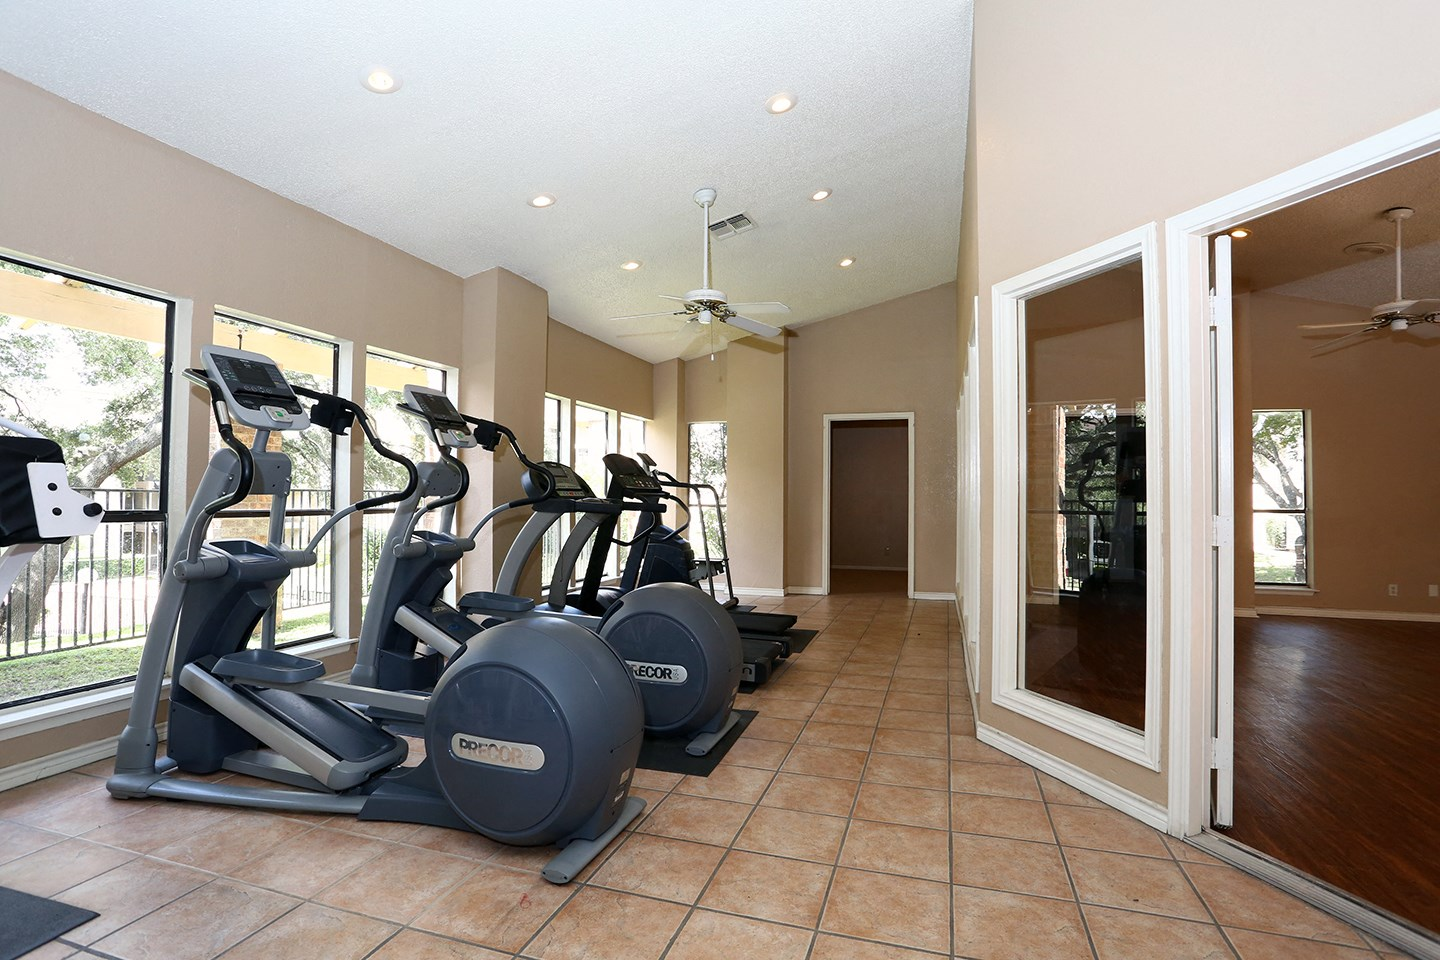 Sunset Canyon Apartments, San Antonio, Texas - fitness center